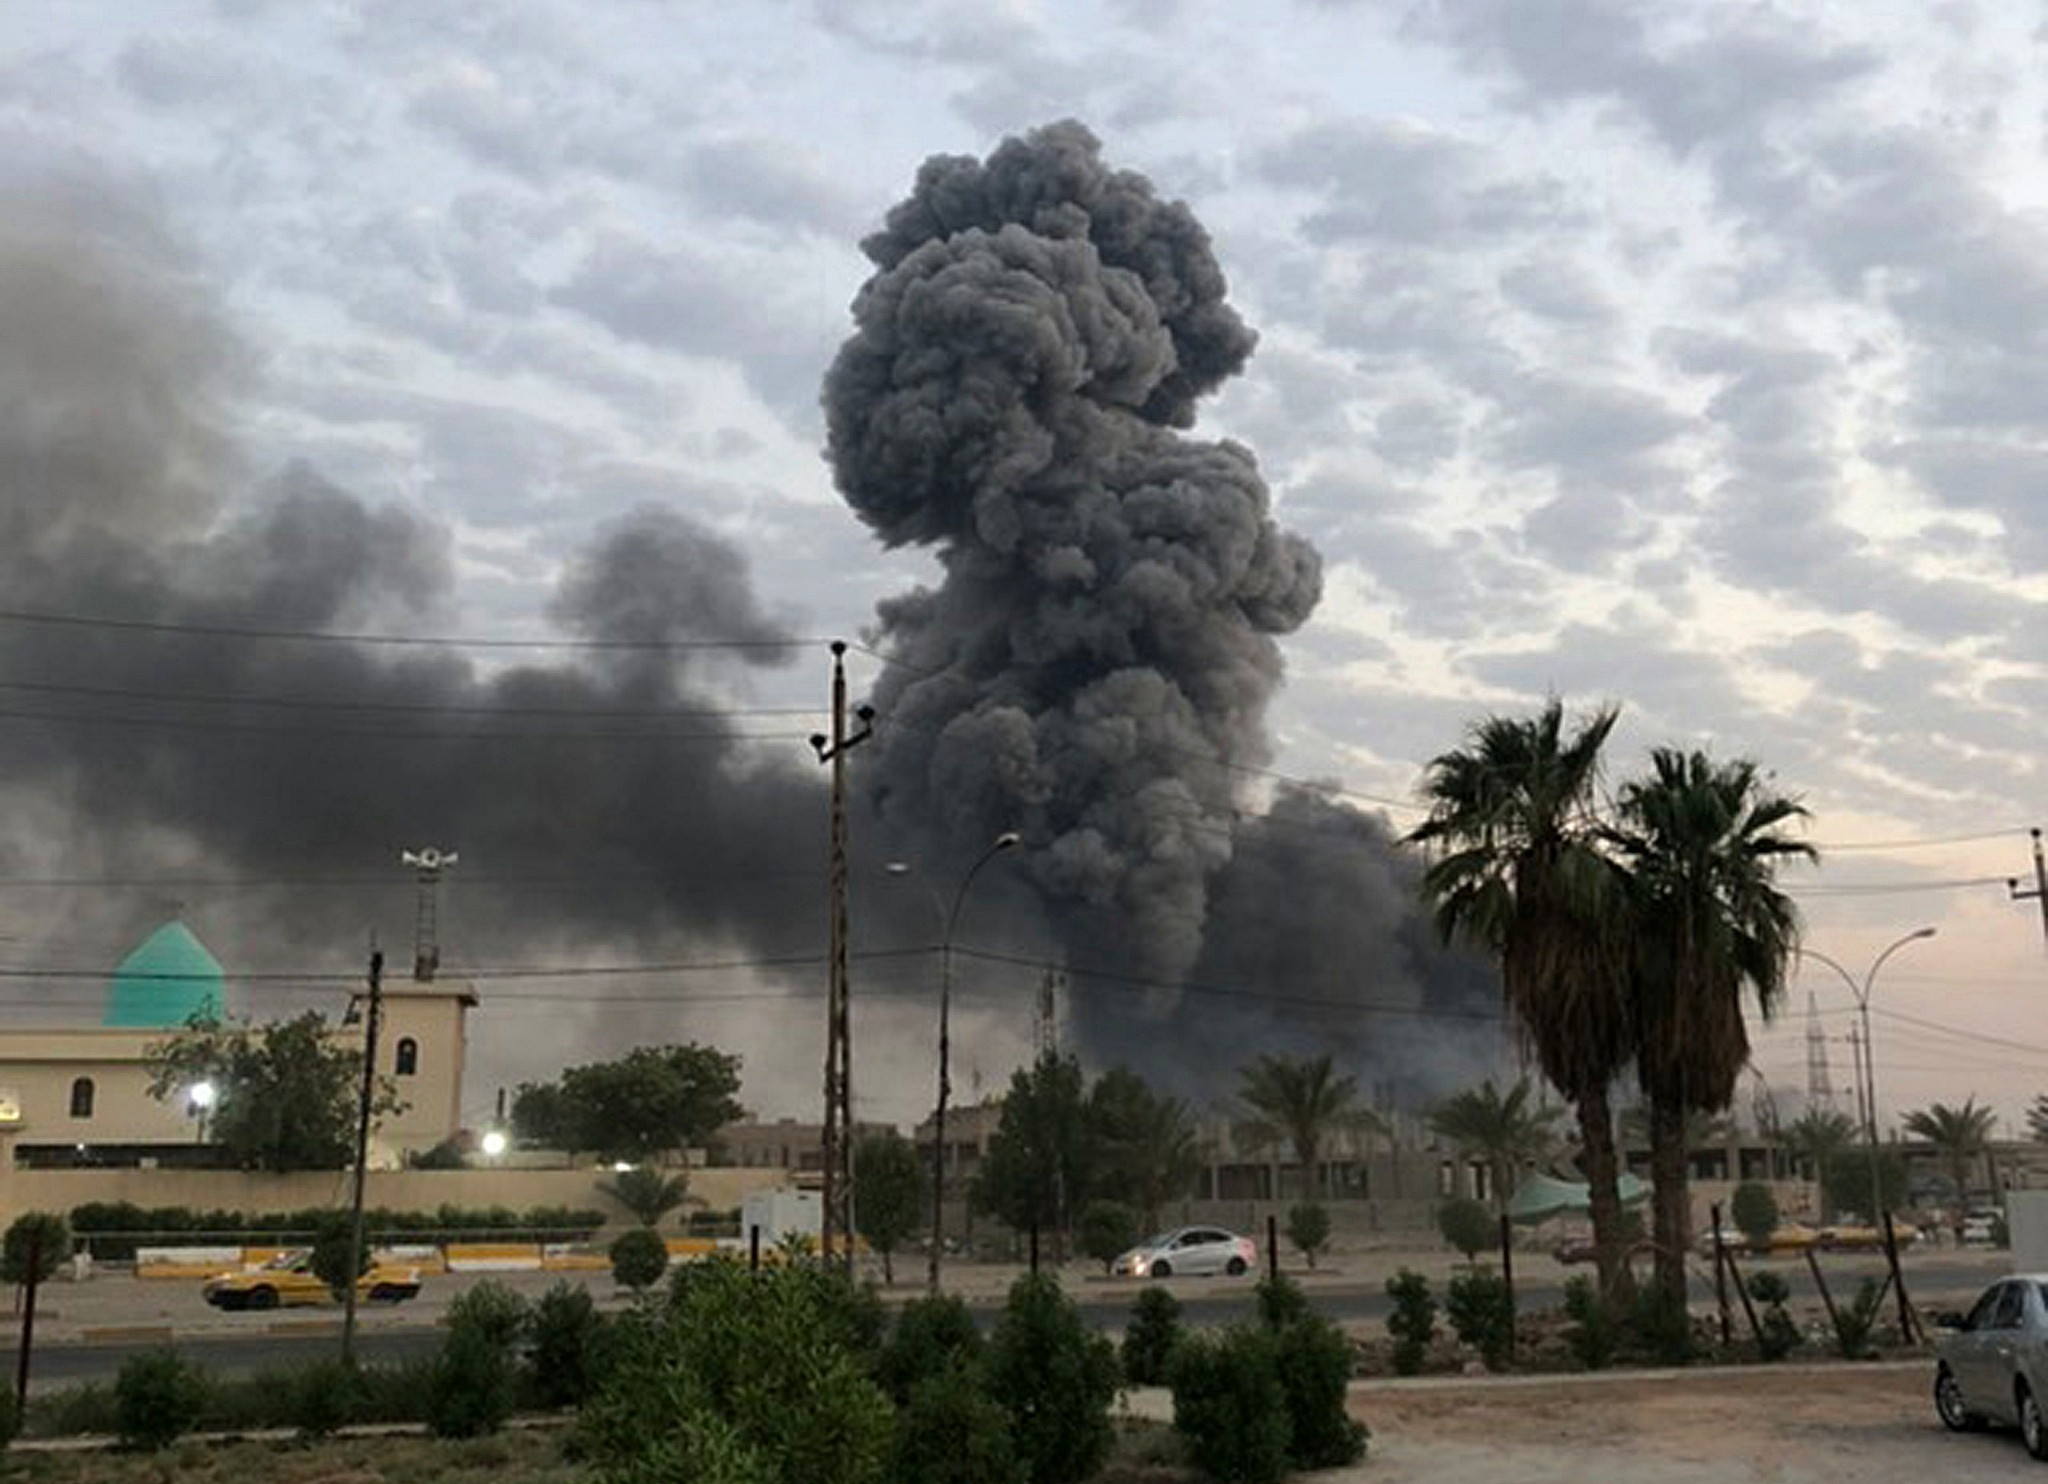 New Mysterious Blast Rocks Militia Arms Depot in Iraq